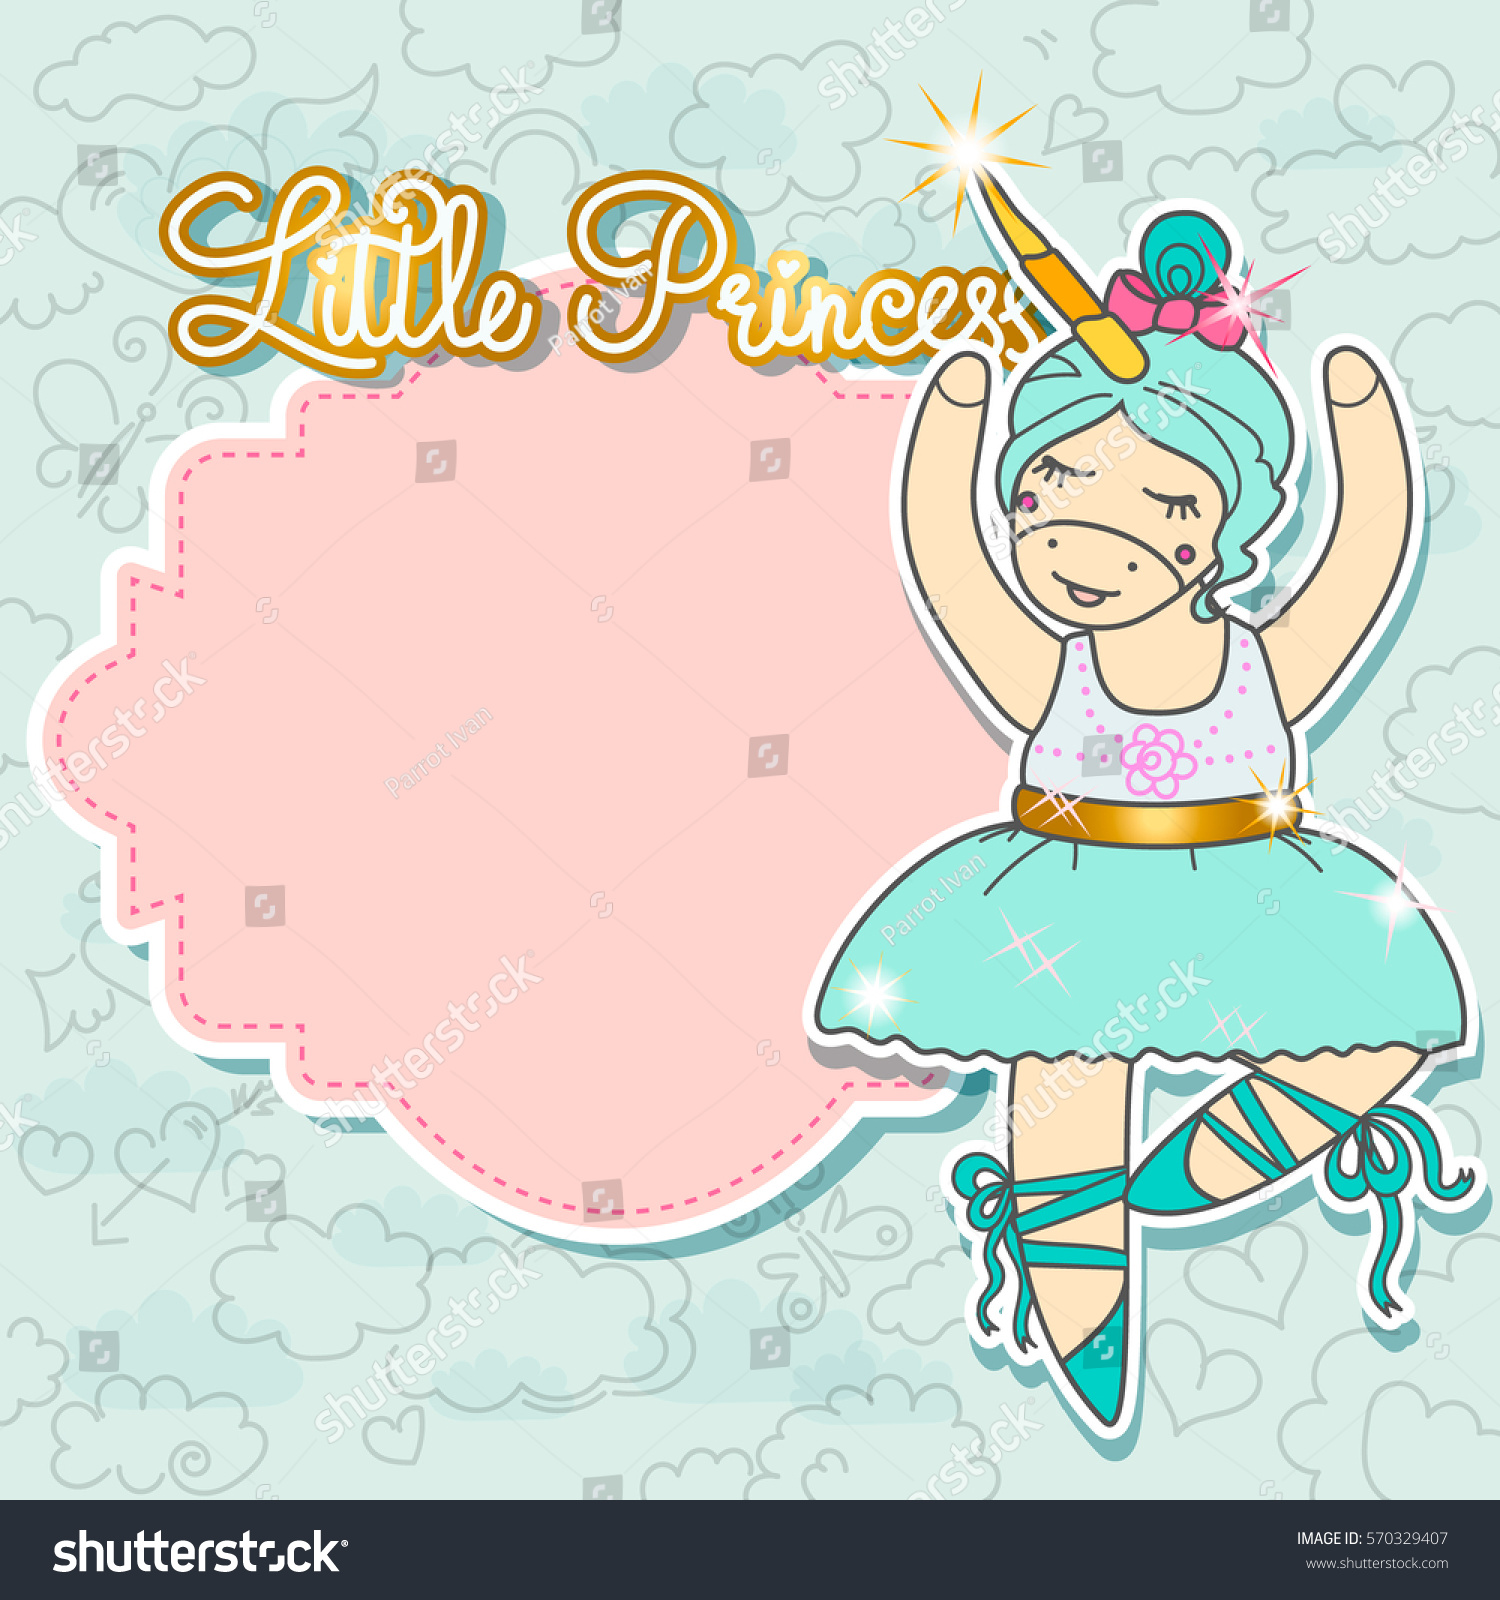 Little Princess Card Template With Blank Space For Text Cute Unicorn Doing Ballet Dance Birthday Party Invitation Vector